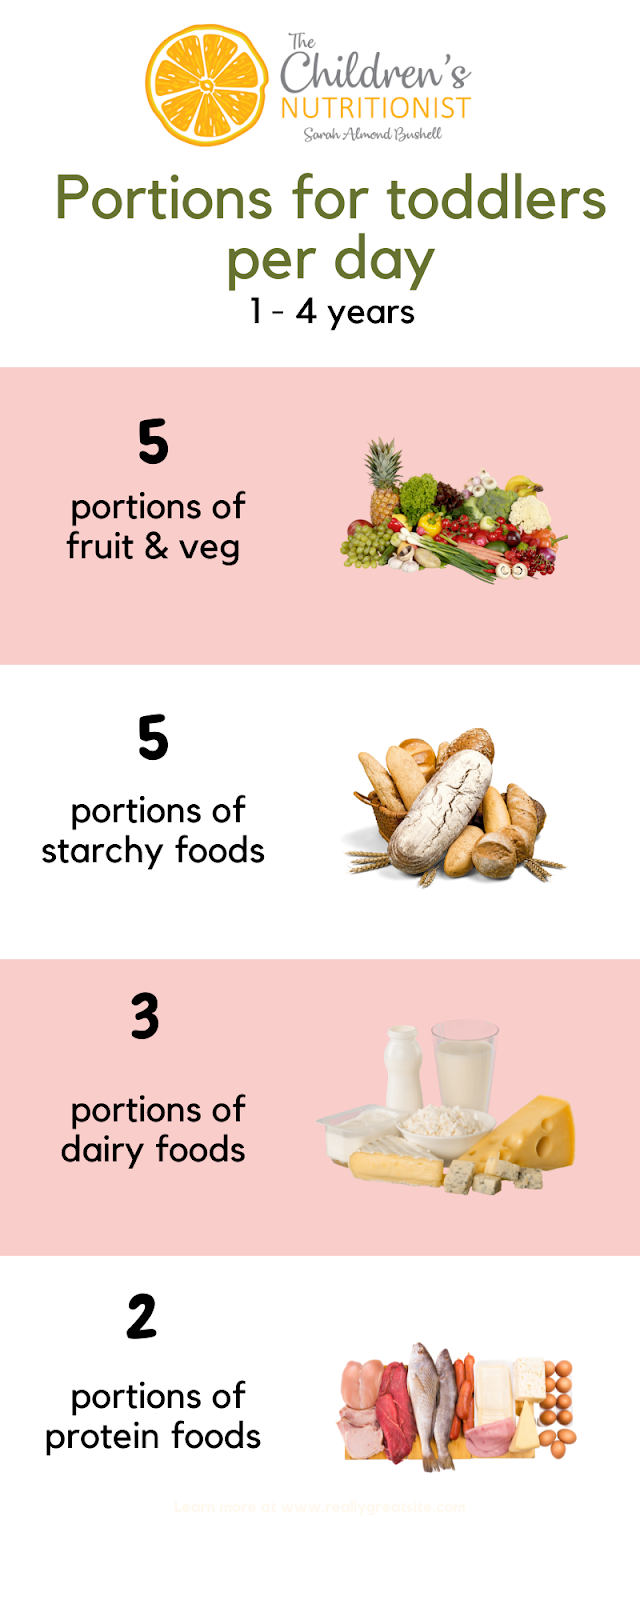 Healthy finger food for toddlers and 50 easy meal options by Sarah Almond Bushell - The Children's Nutritionist